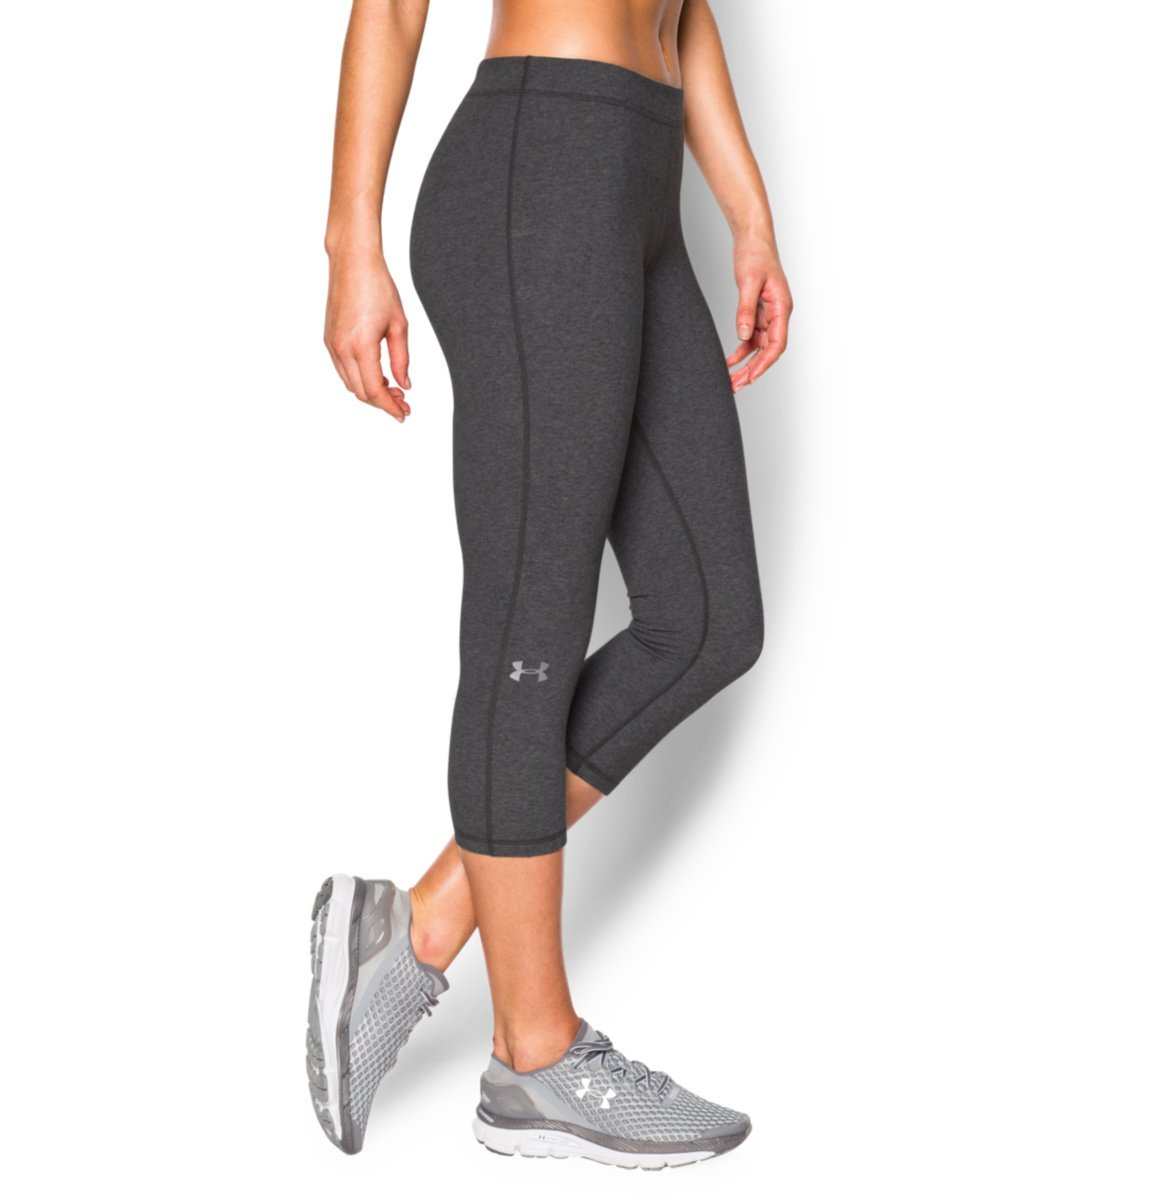 Under Armour Women's Favorite Capris - Solid Carbon Heather/Metallic Silver Pants